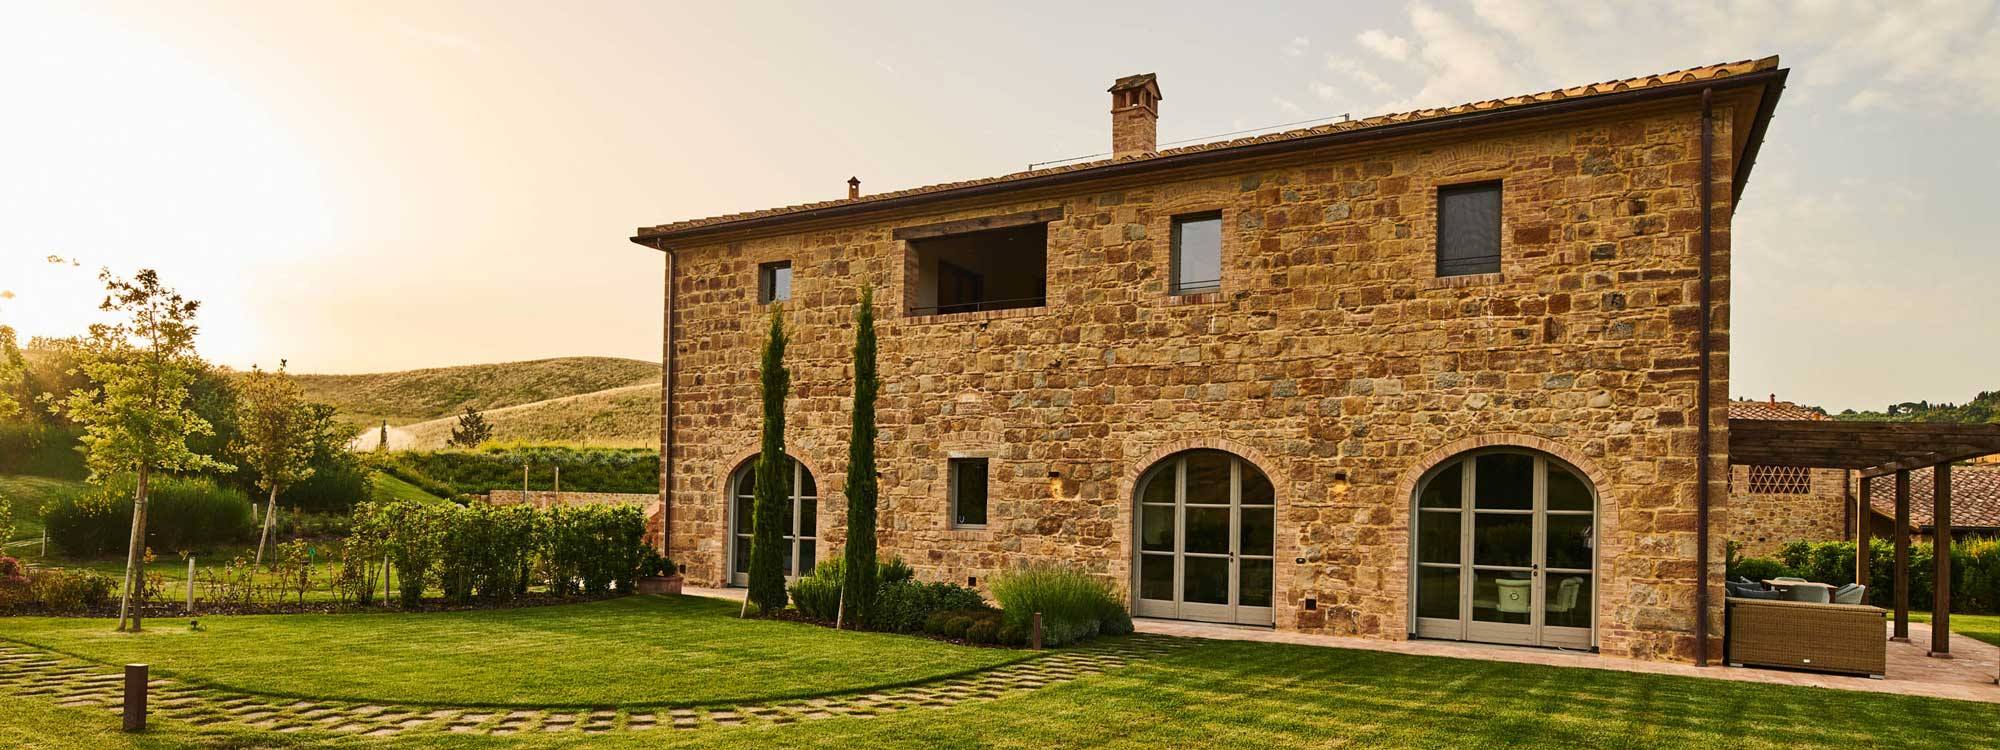 La Spina B, beautiful Tuscan farmhouse immersed in award-winning golf course with amazing sunset views